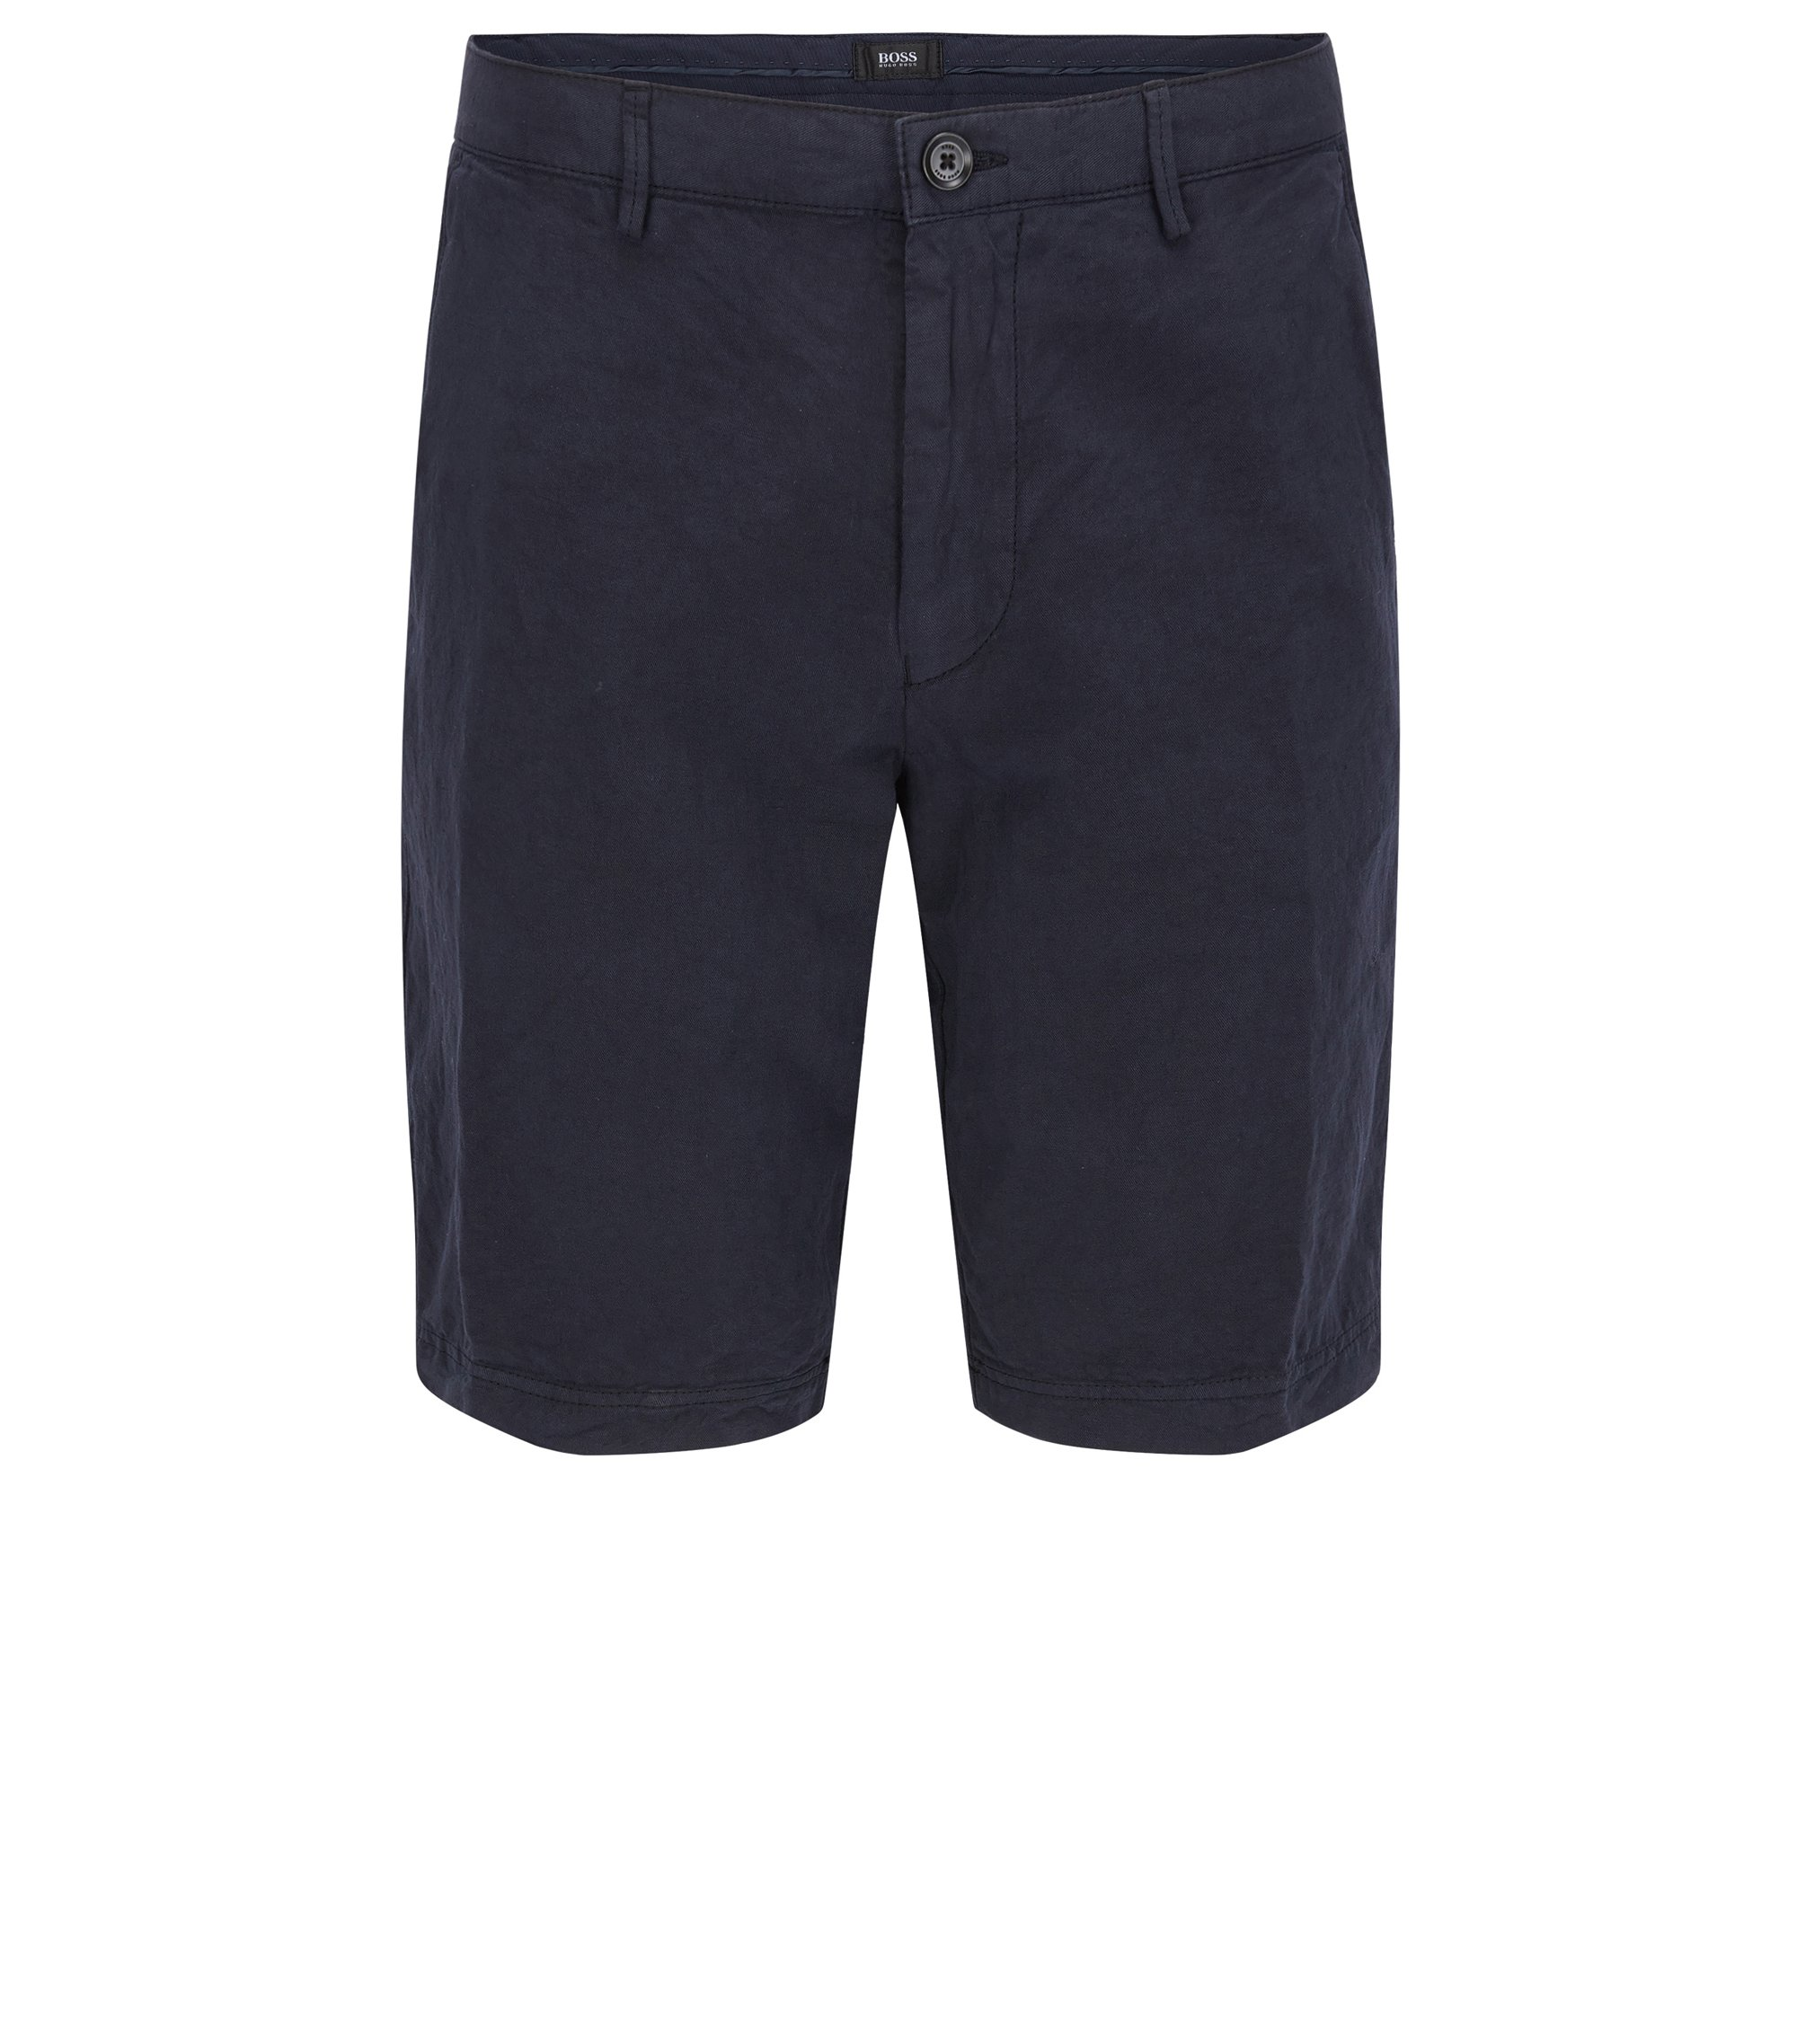 Cotton Linen Shorts, Regular Fit | Crigan Short D, Dark Blue